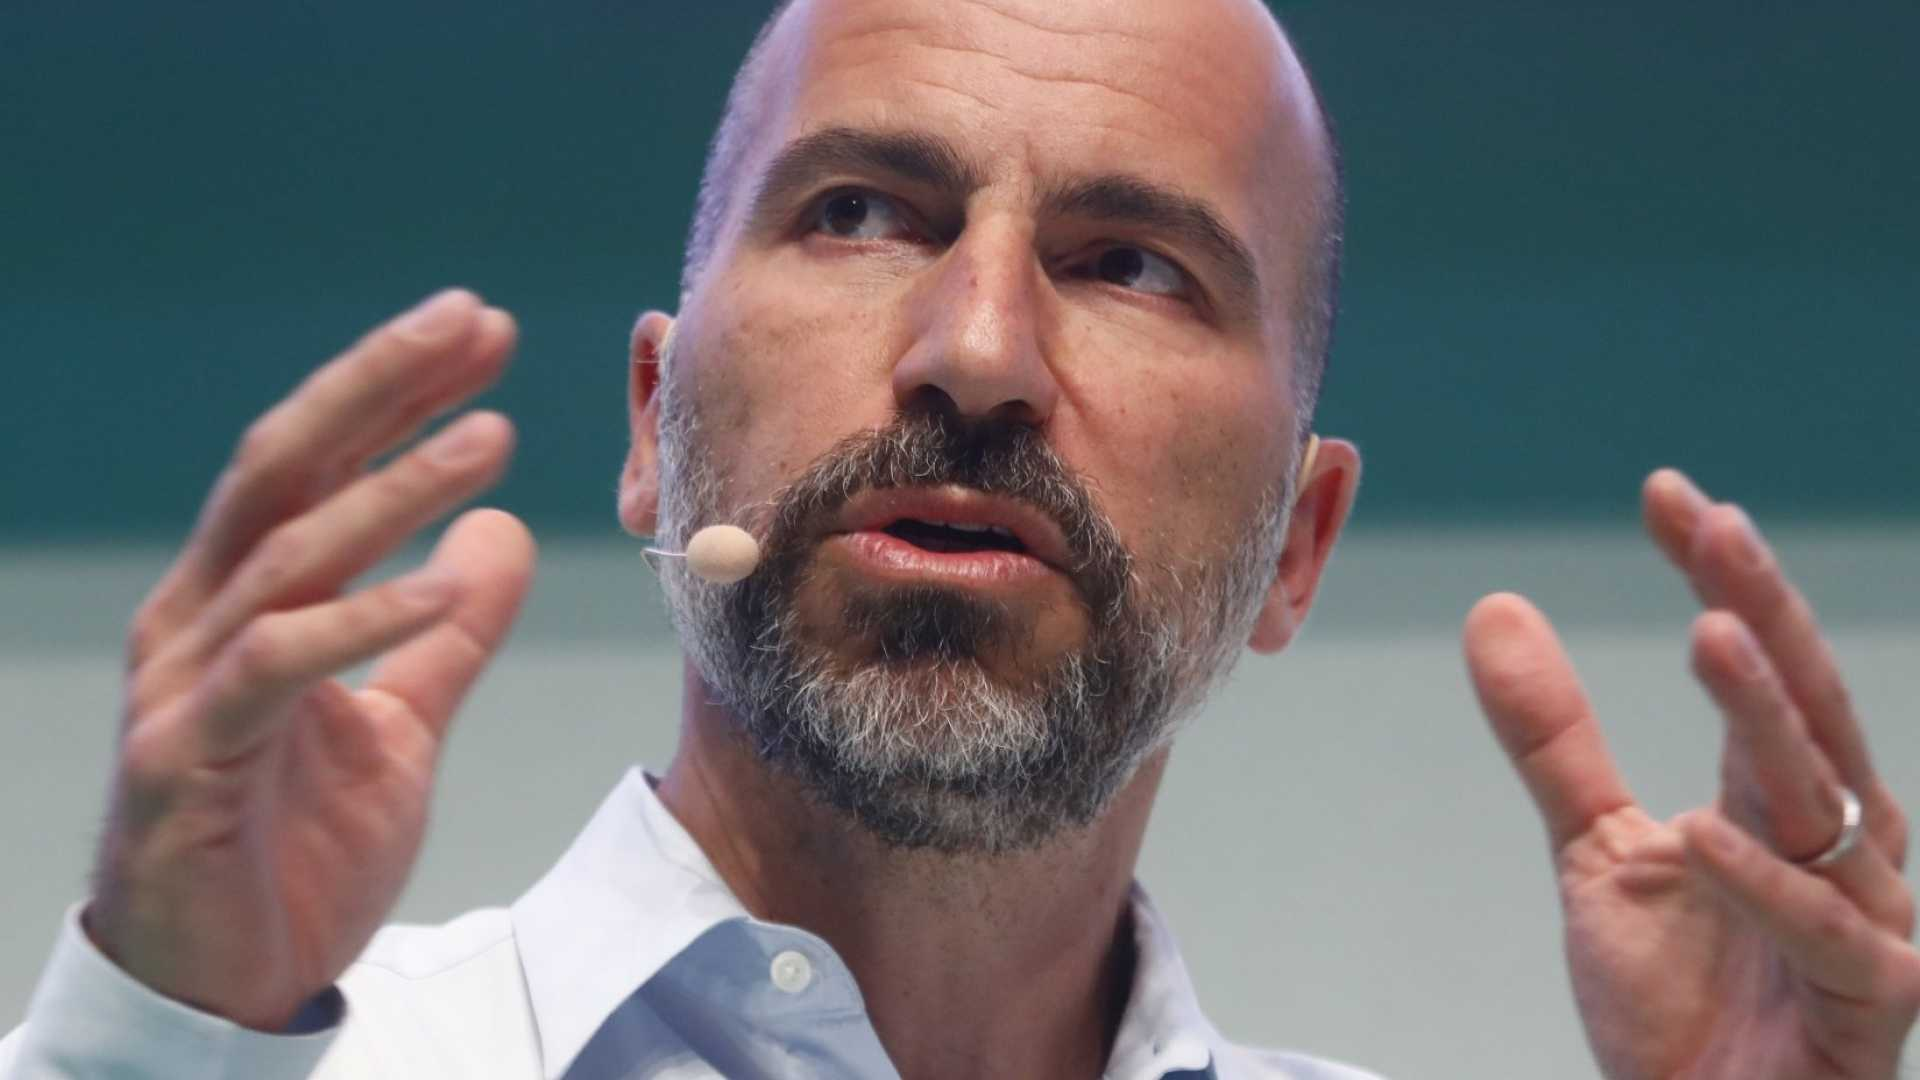 Uber's CEO, Once a Refugee Himself, Is Taking Extraordinary Action to Help Families Separated at the Border